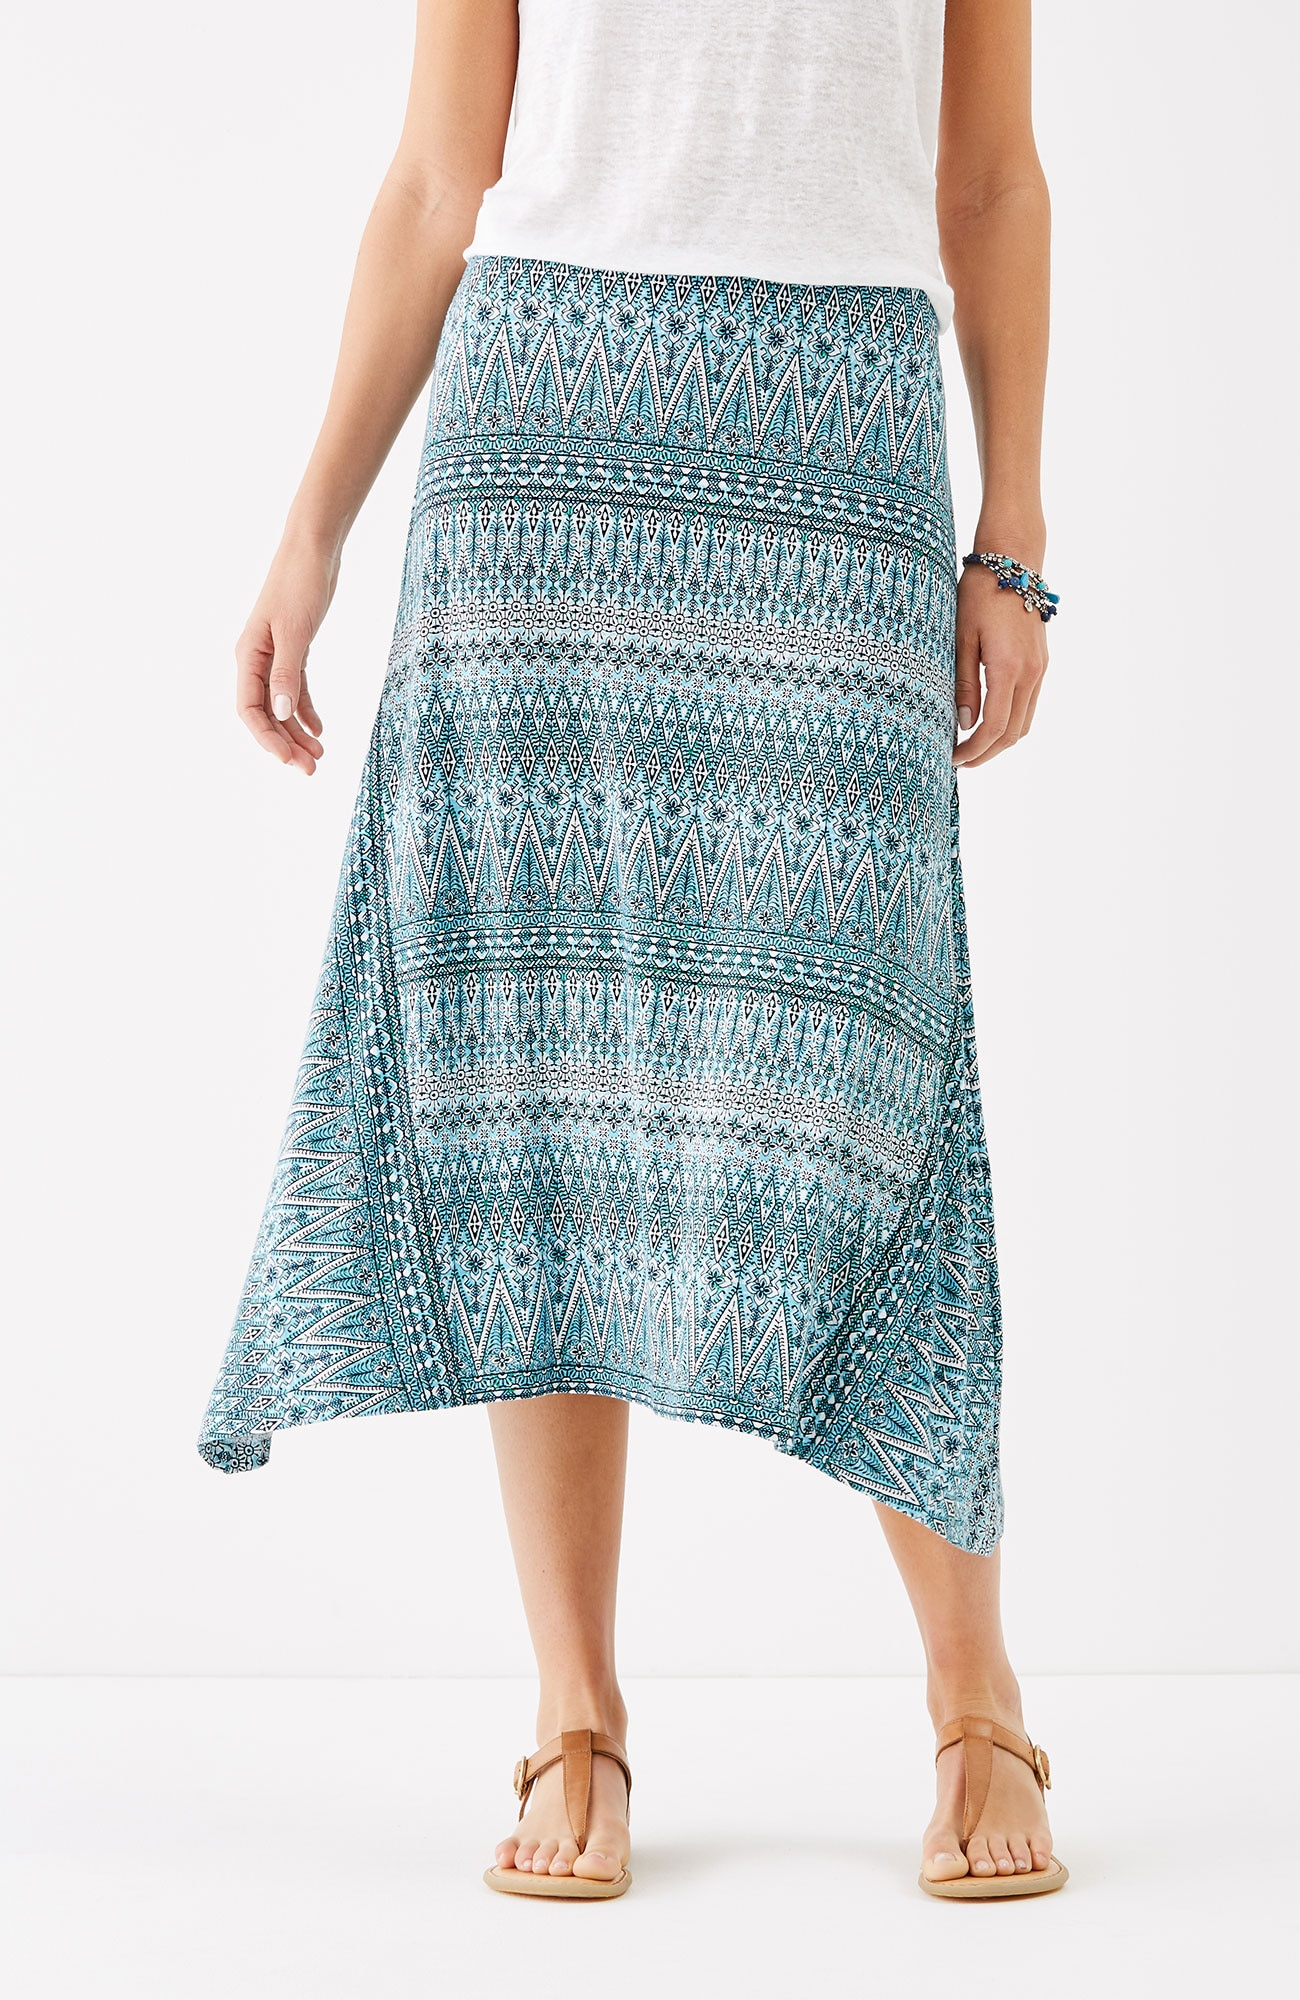 dipped-hem printed knit skirt